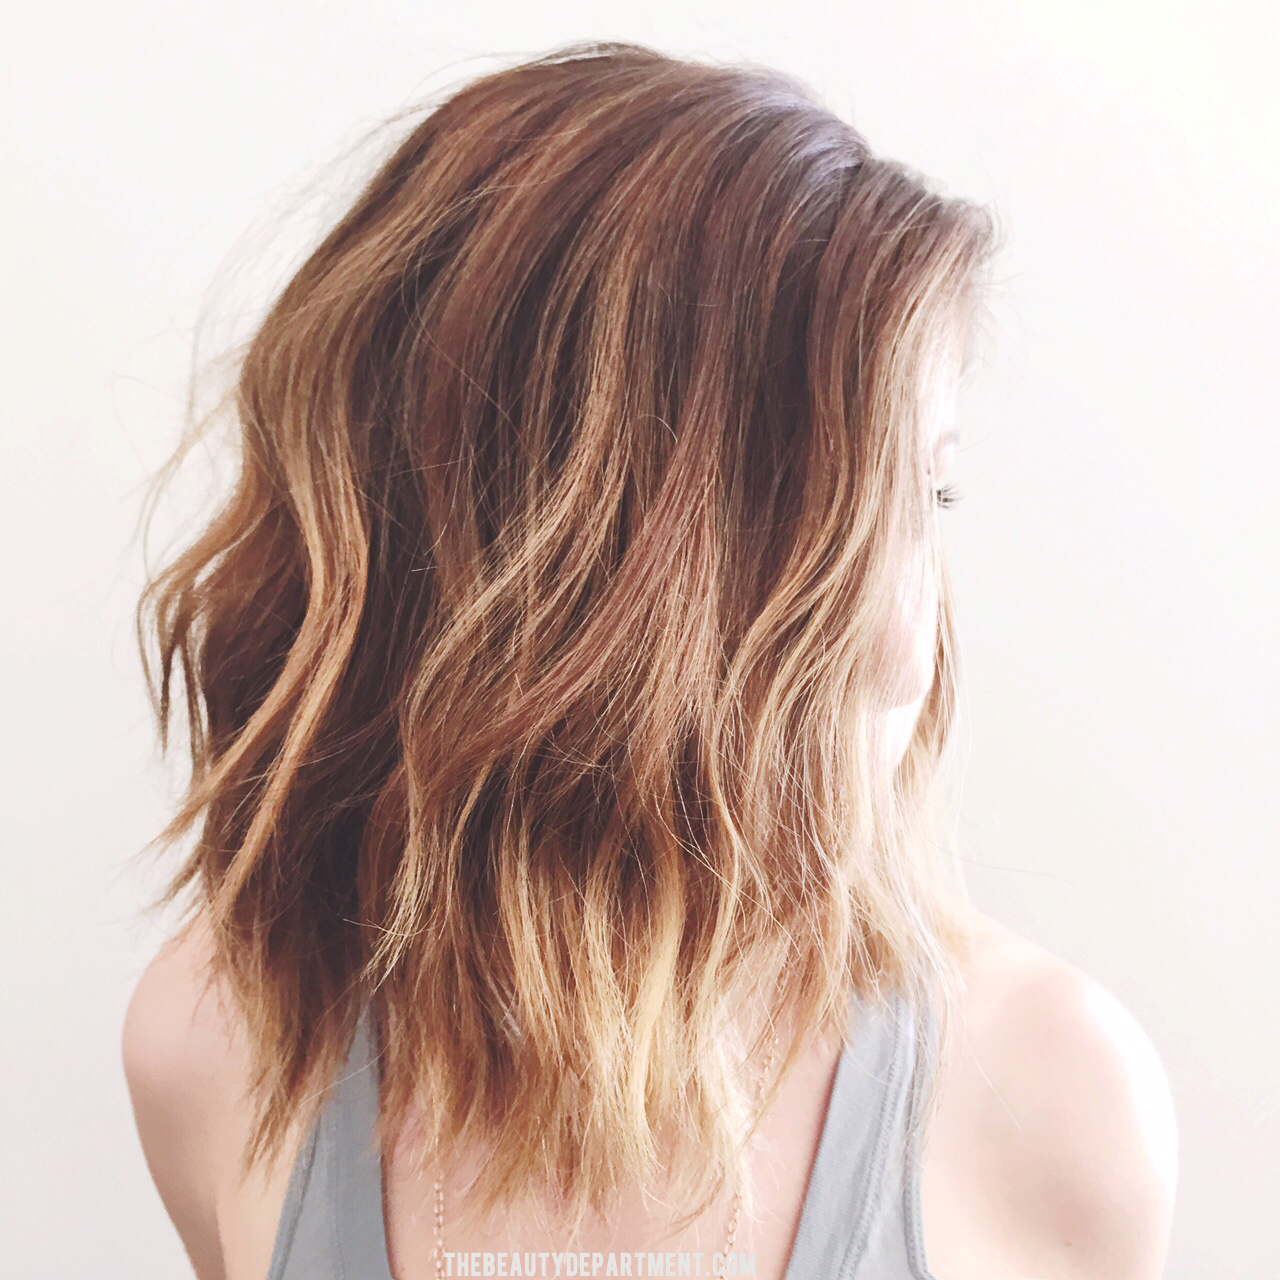 TORTOISESHELL HAIR COLOR TREND